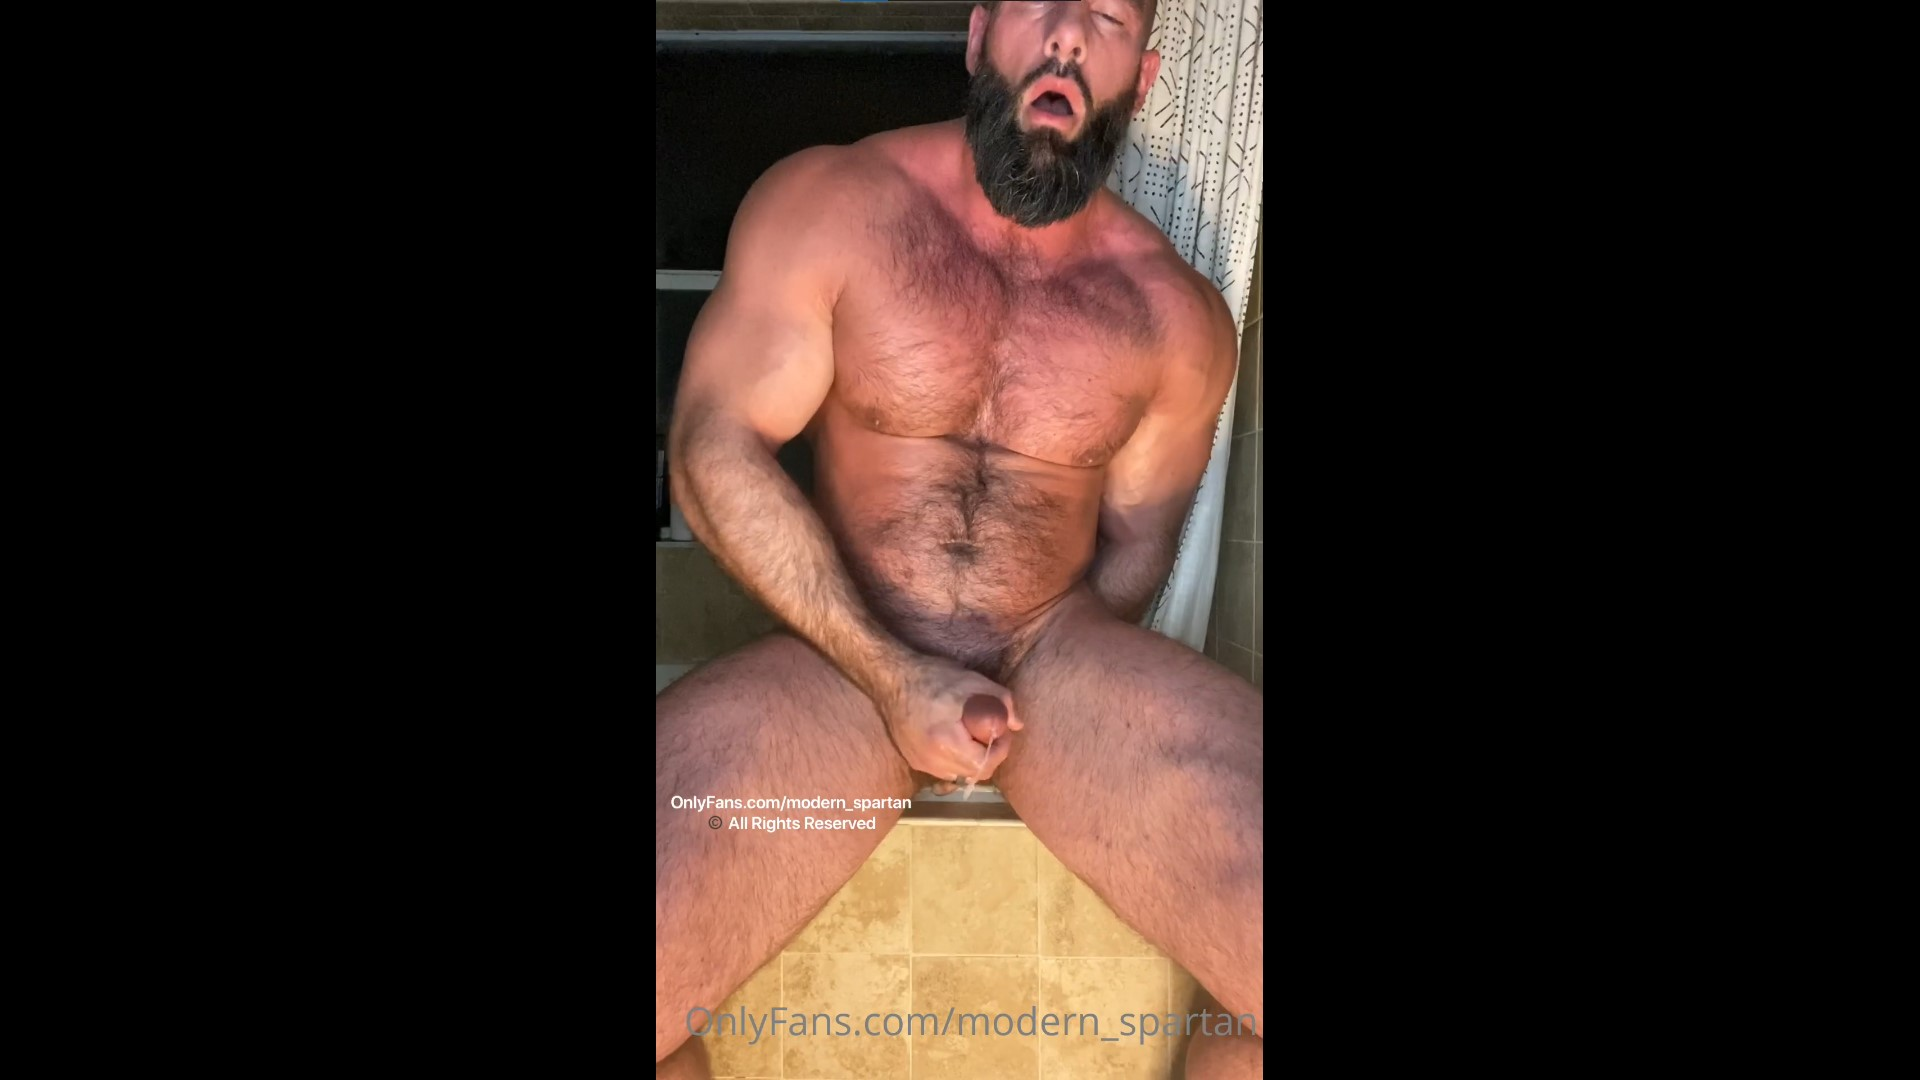 Fucking myself with a dildo and jerking off till I cum - Nick Pulos (modern_spartan)